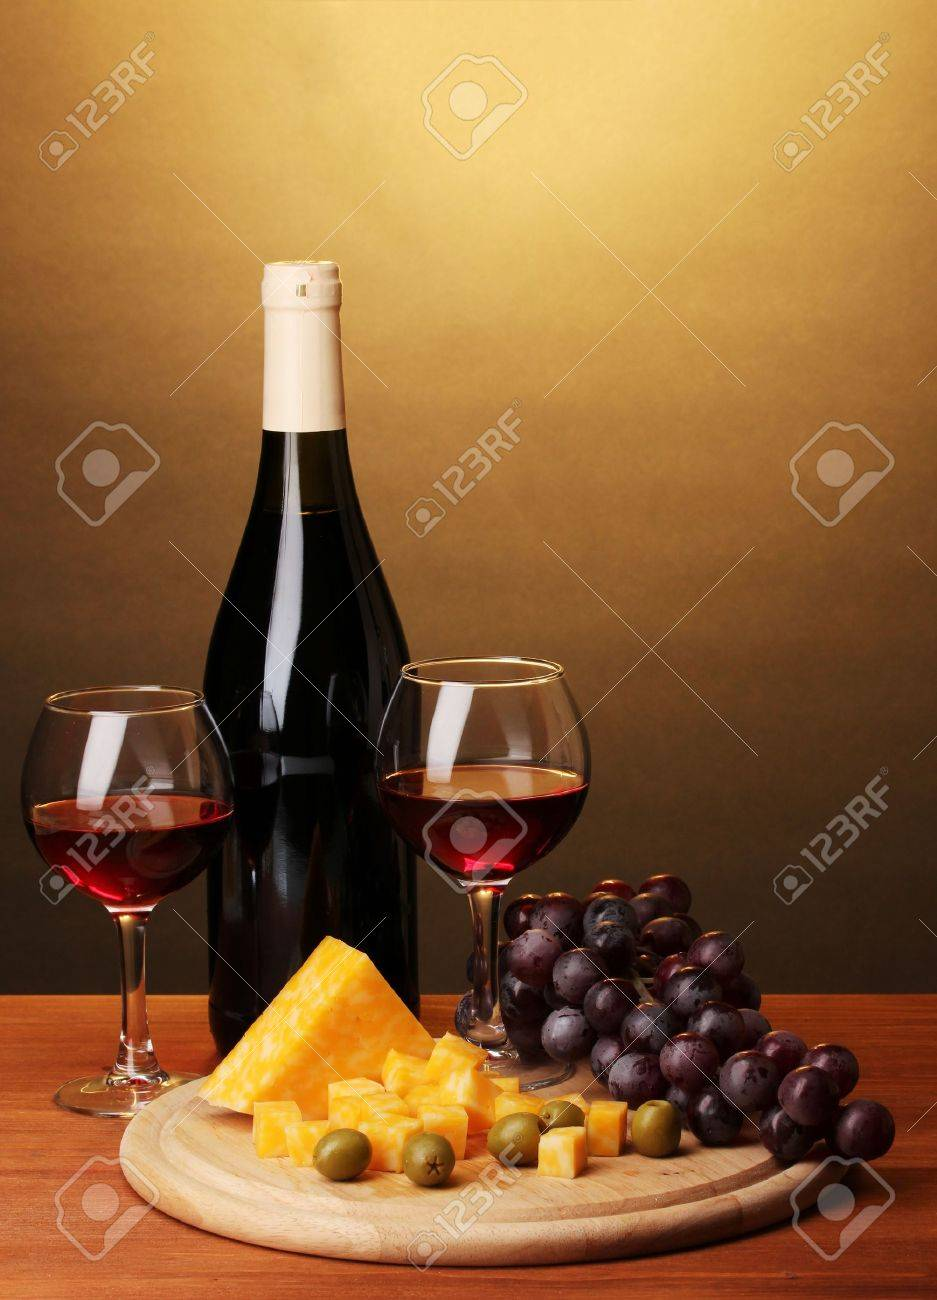 Bottle of great wine with wineglasses and cheese on wooden table on brown background Stock Photo - 13438028